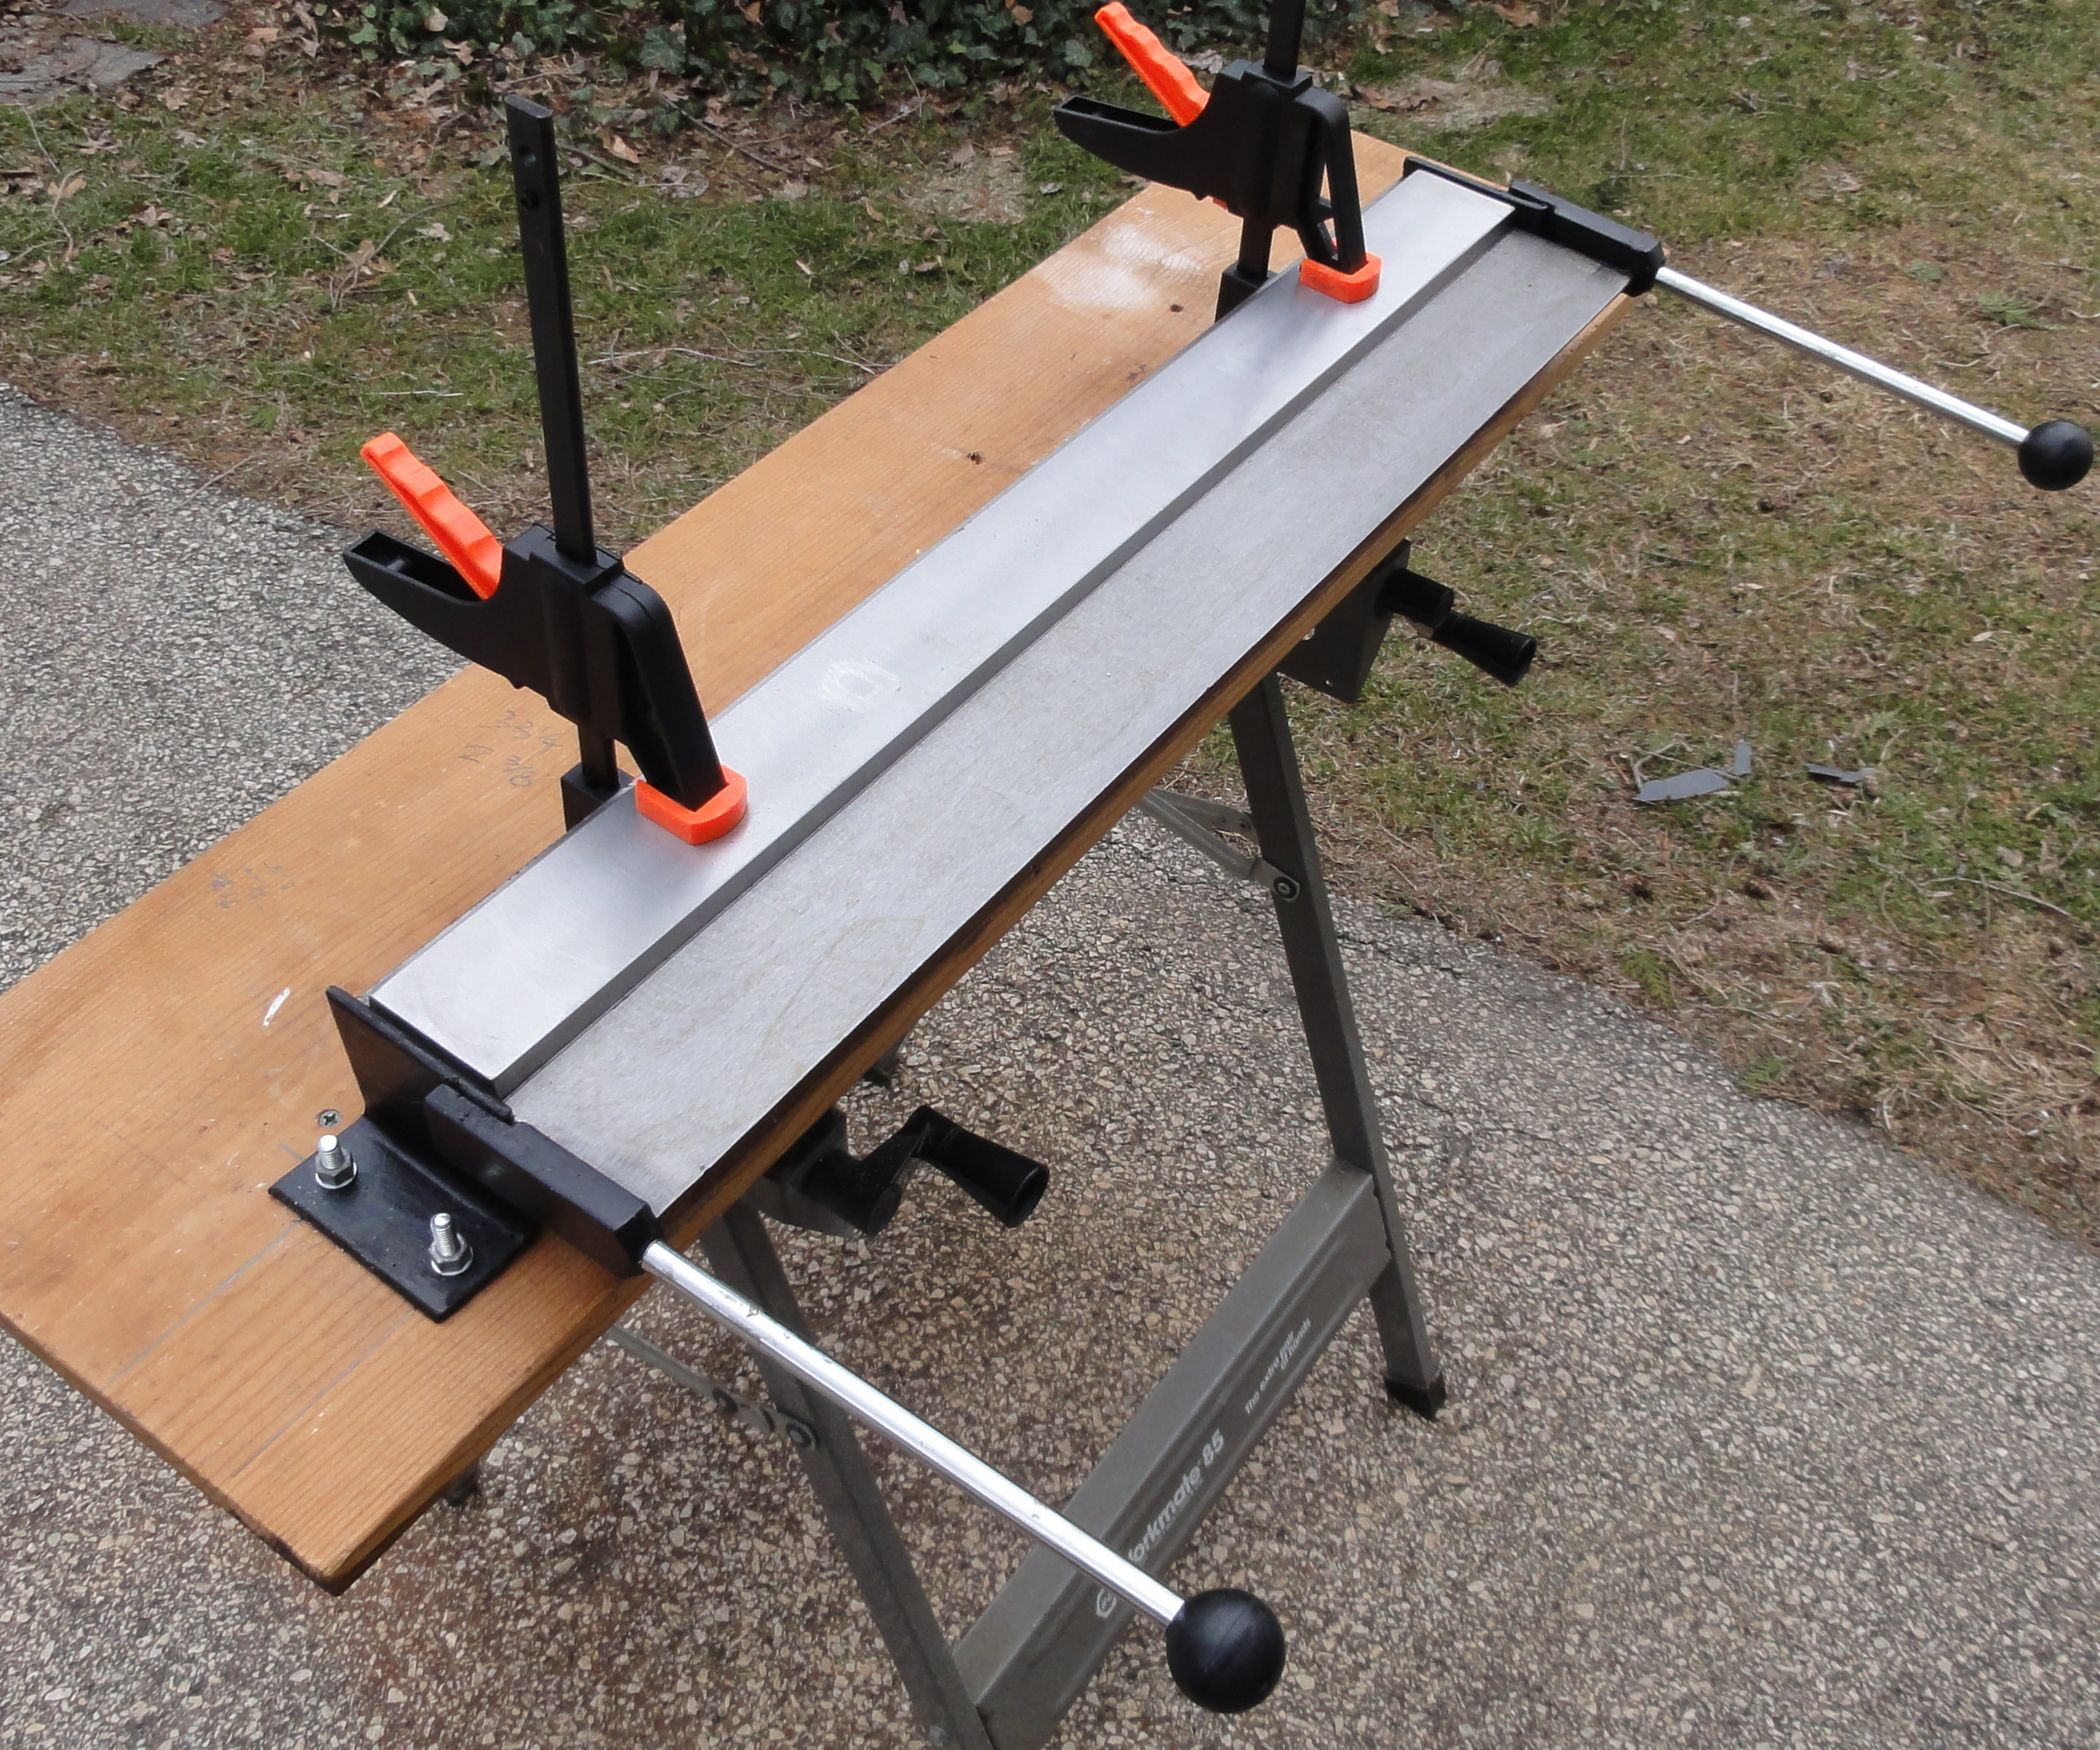 I Purchased A 30 Quot Metal Bending Brake From Harbor Freight Model 67240 For A Small Project I Needed To Comple Metal Bending Sheet Metal Brake Sheet Metal